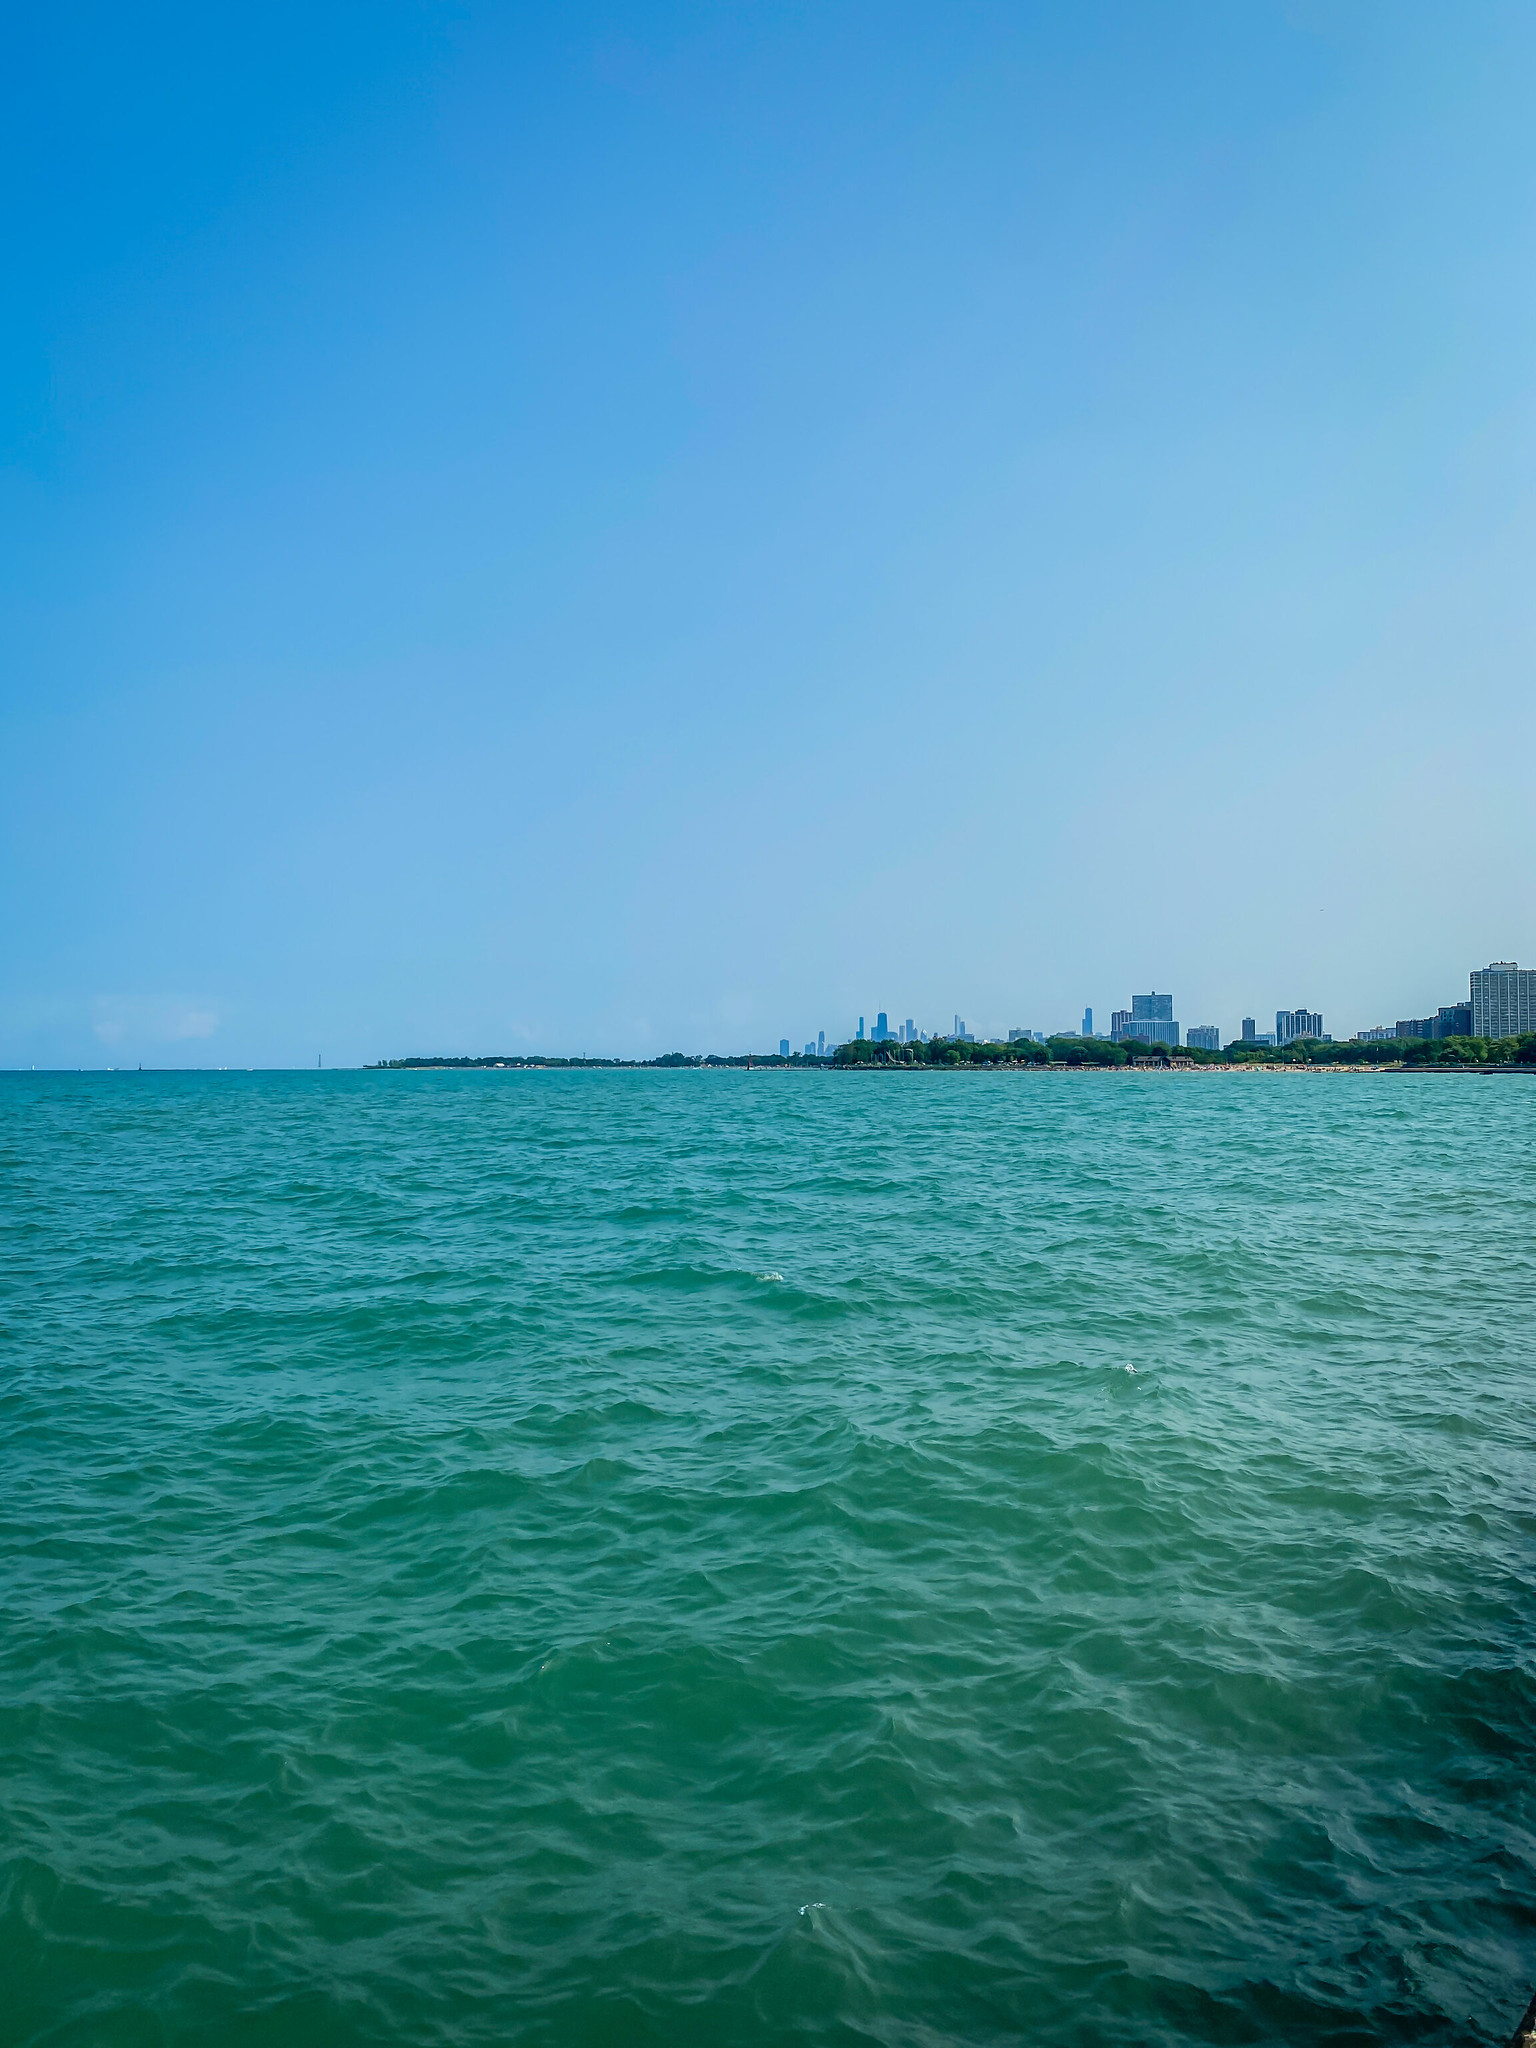 First Time In Chicago: The Perfect 3 Day Itinerary | Chicago Travel Guide | 72 Hours in Chicago | 3 Days in Chicago Itinerary | What to do in Chicago | Where to Stay in Chicago | Ultimate Chicago Bucket List | Top Things to Do in Chicago | First Timer's Guide to Chicago | Kathy Osterman Beach Lake Michigan